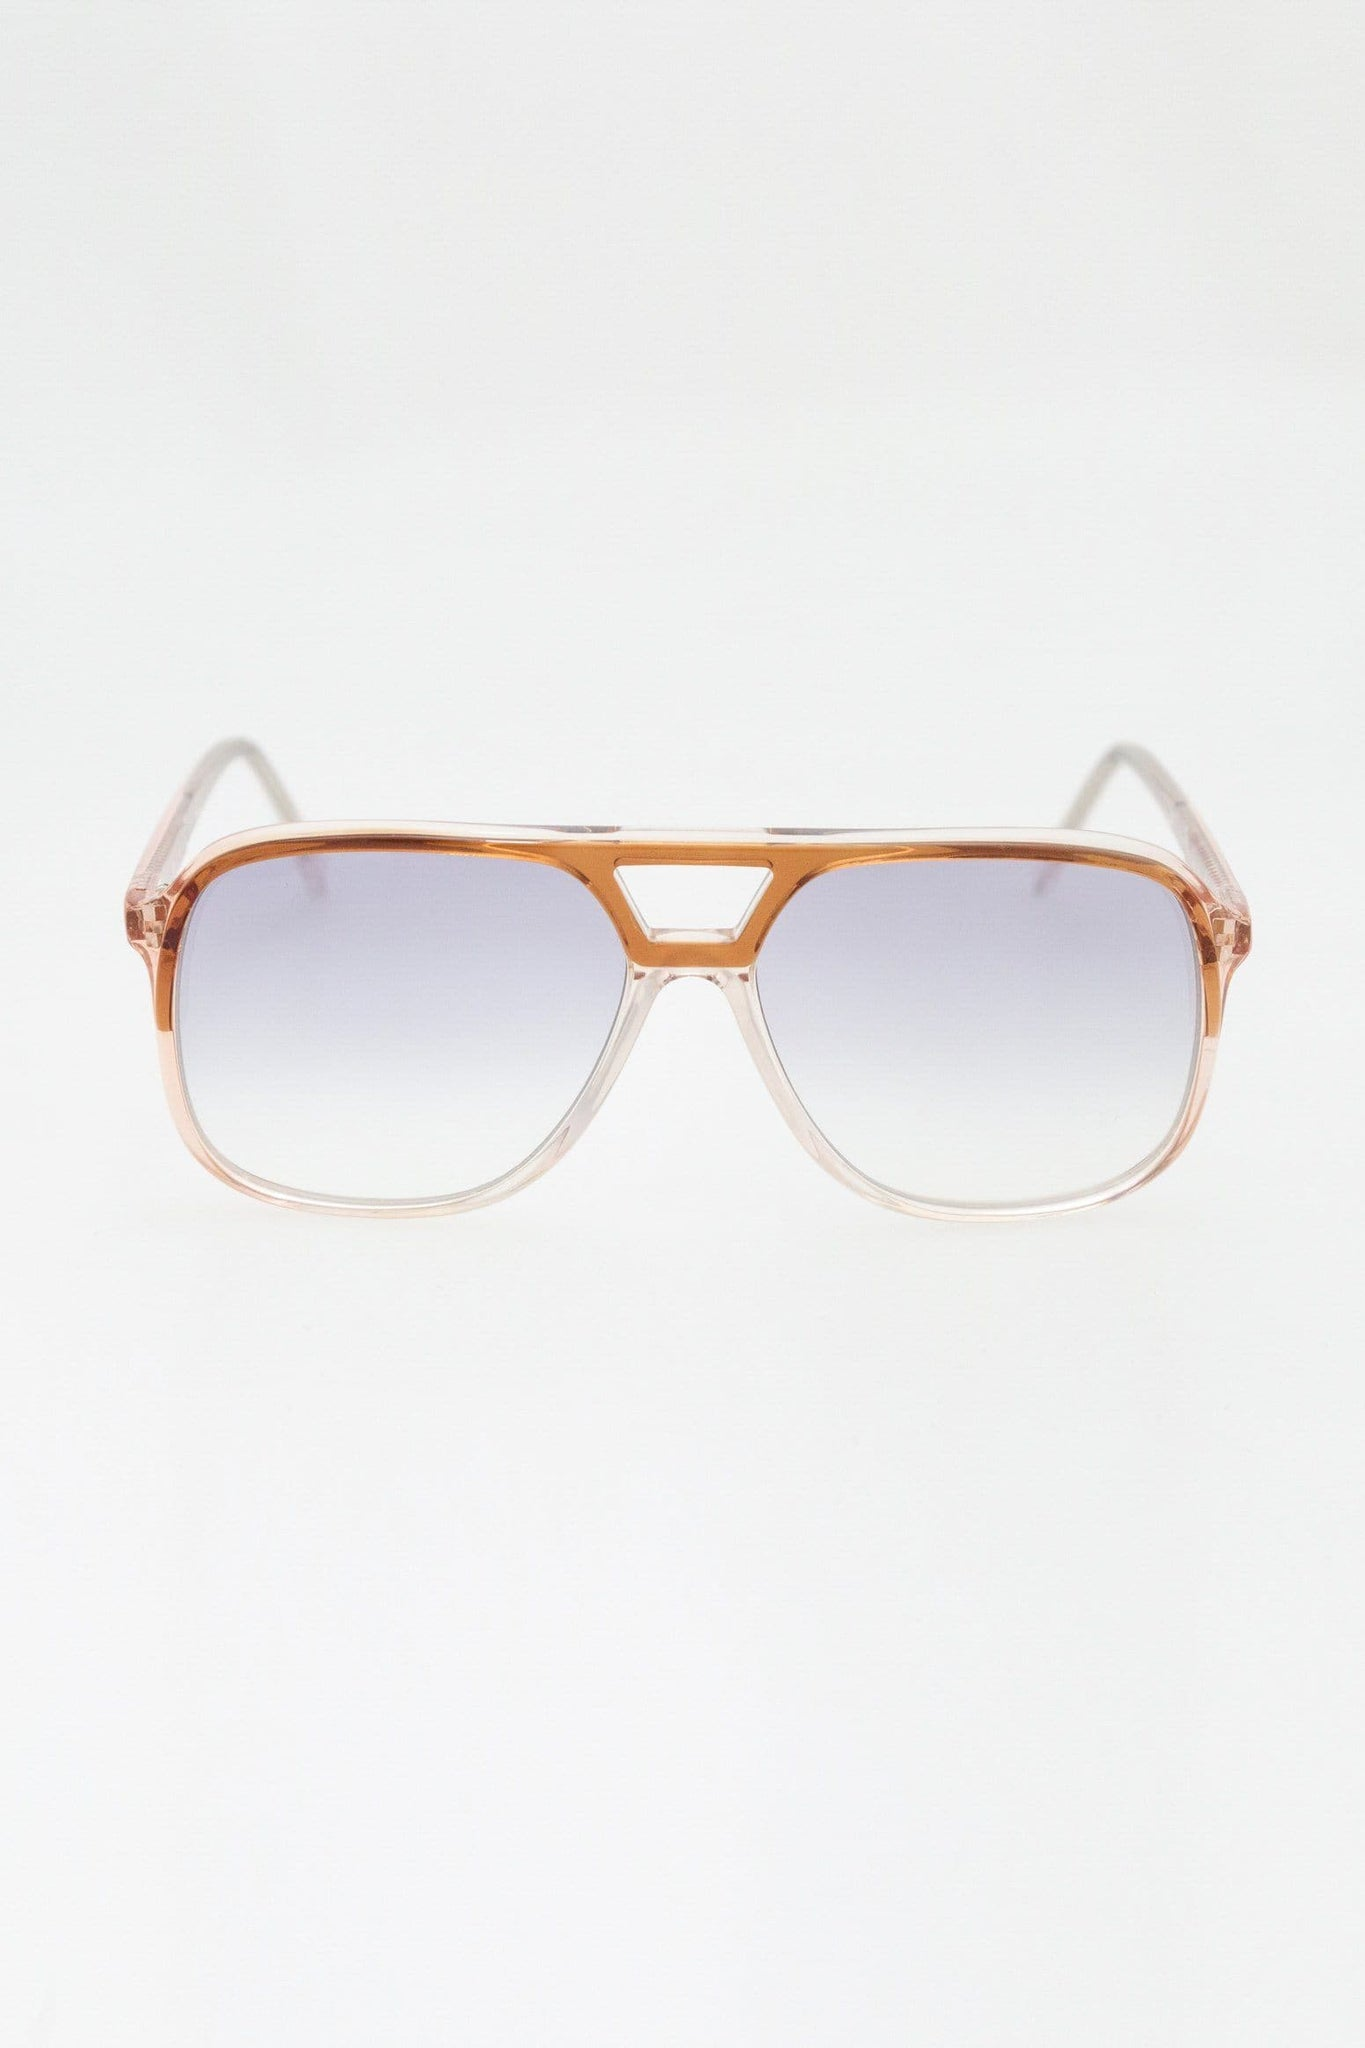 ESQUIRESG - Esquire Vintage Glasses